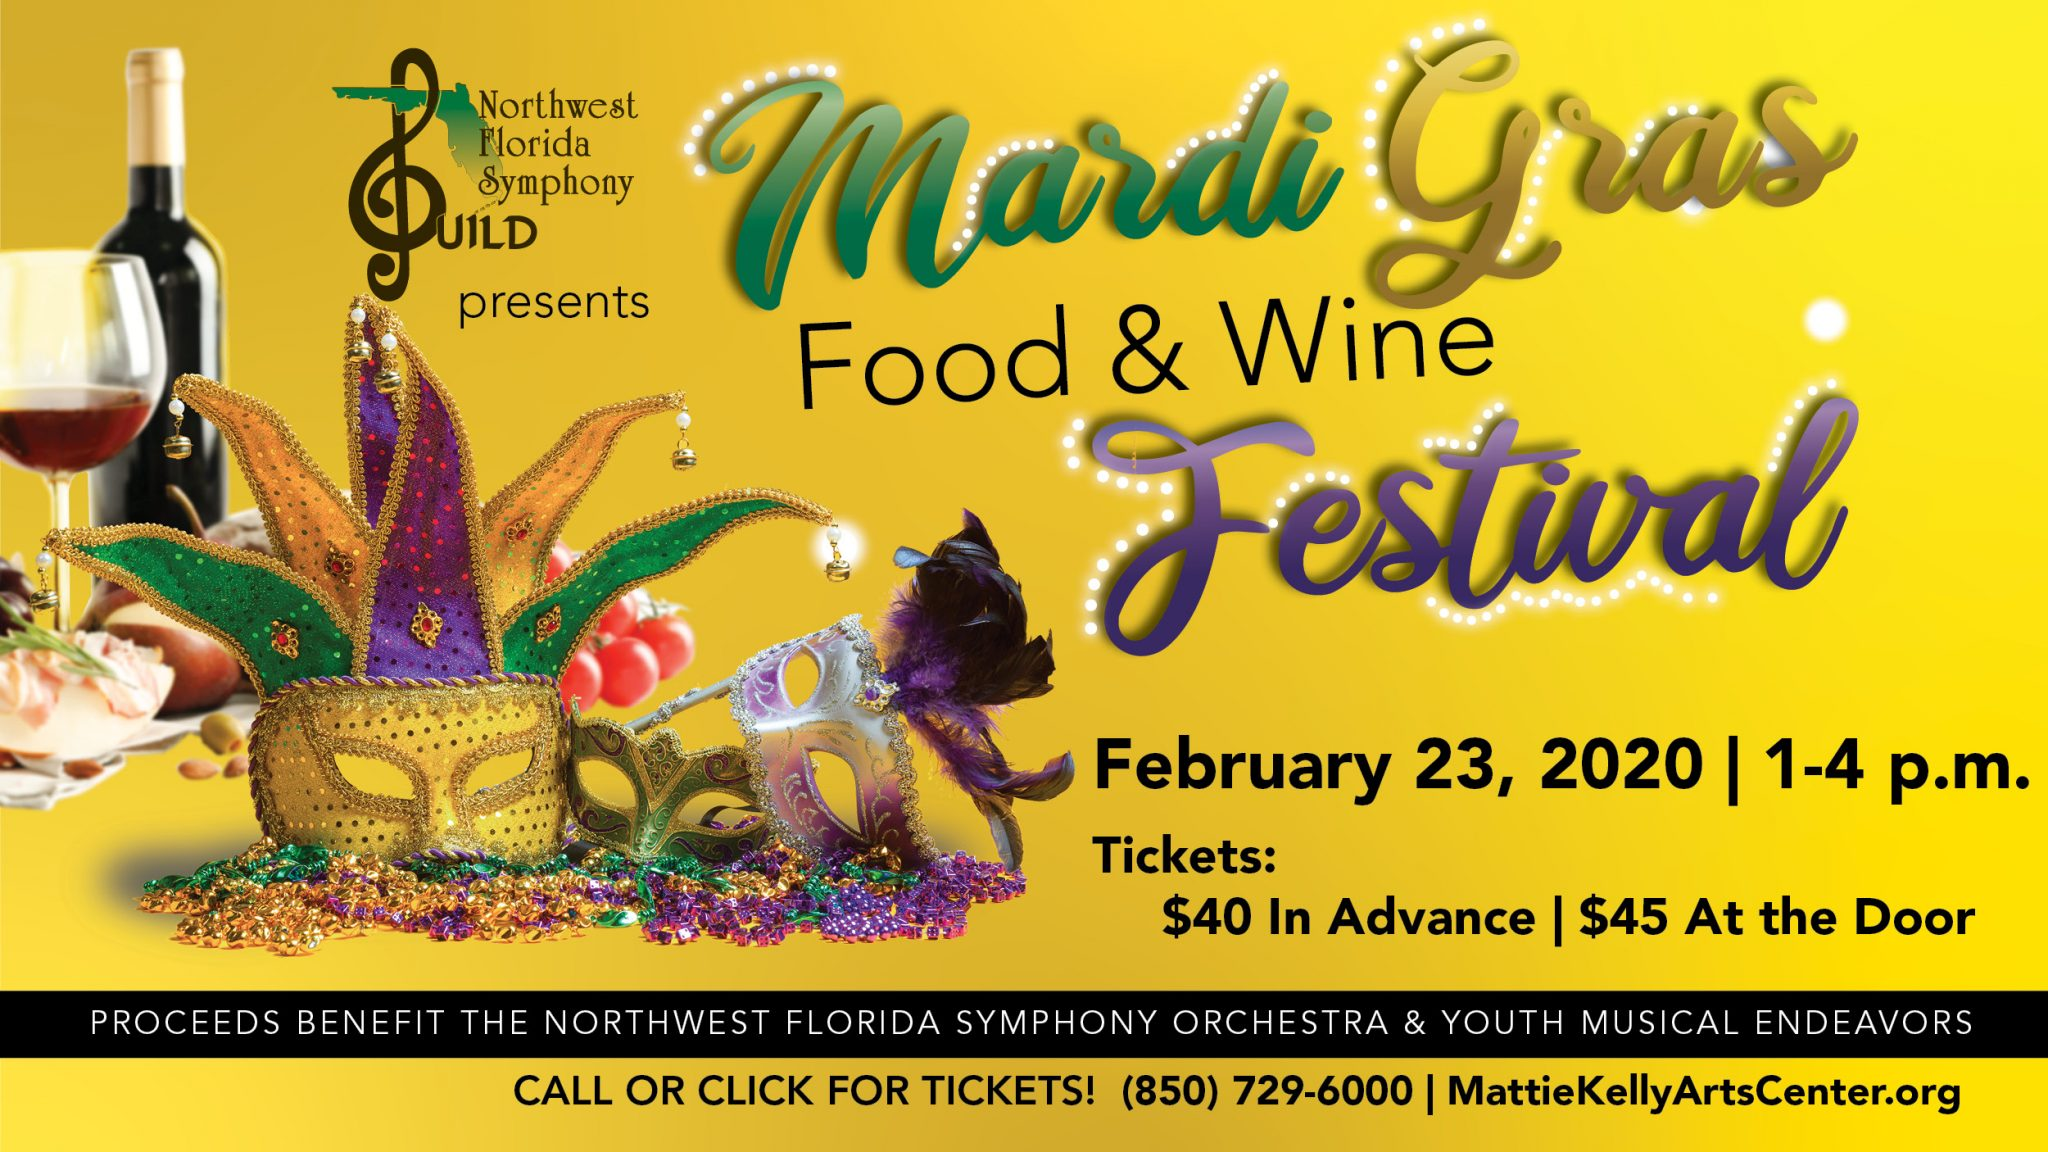 2020 Mardi Gras Food & Wine Festival hosted by Northwest Florida Symphony Guild